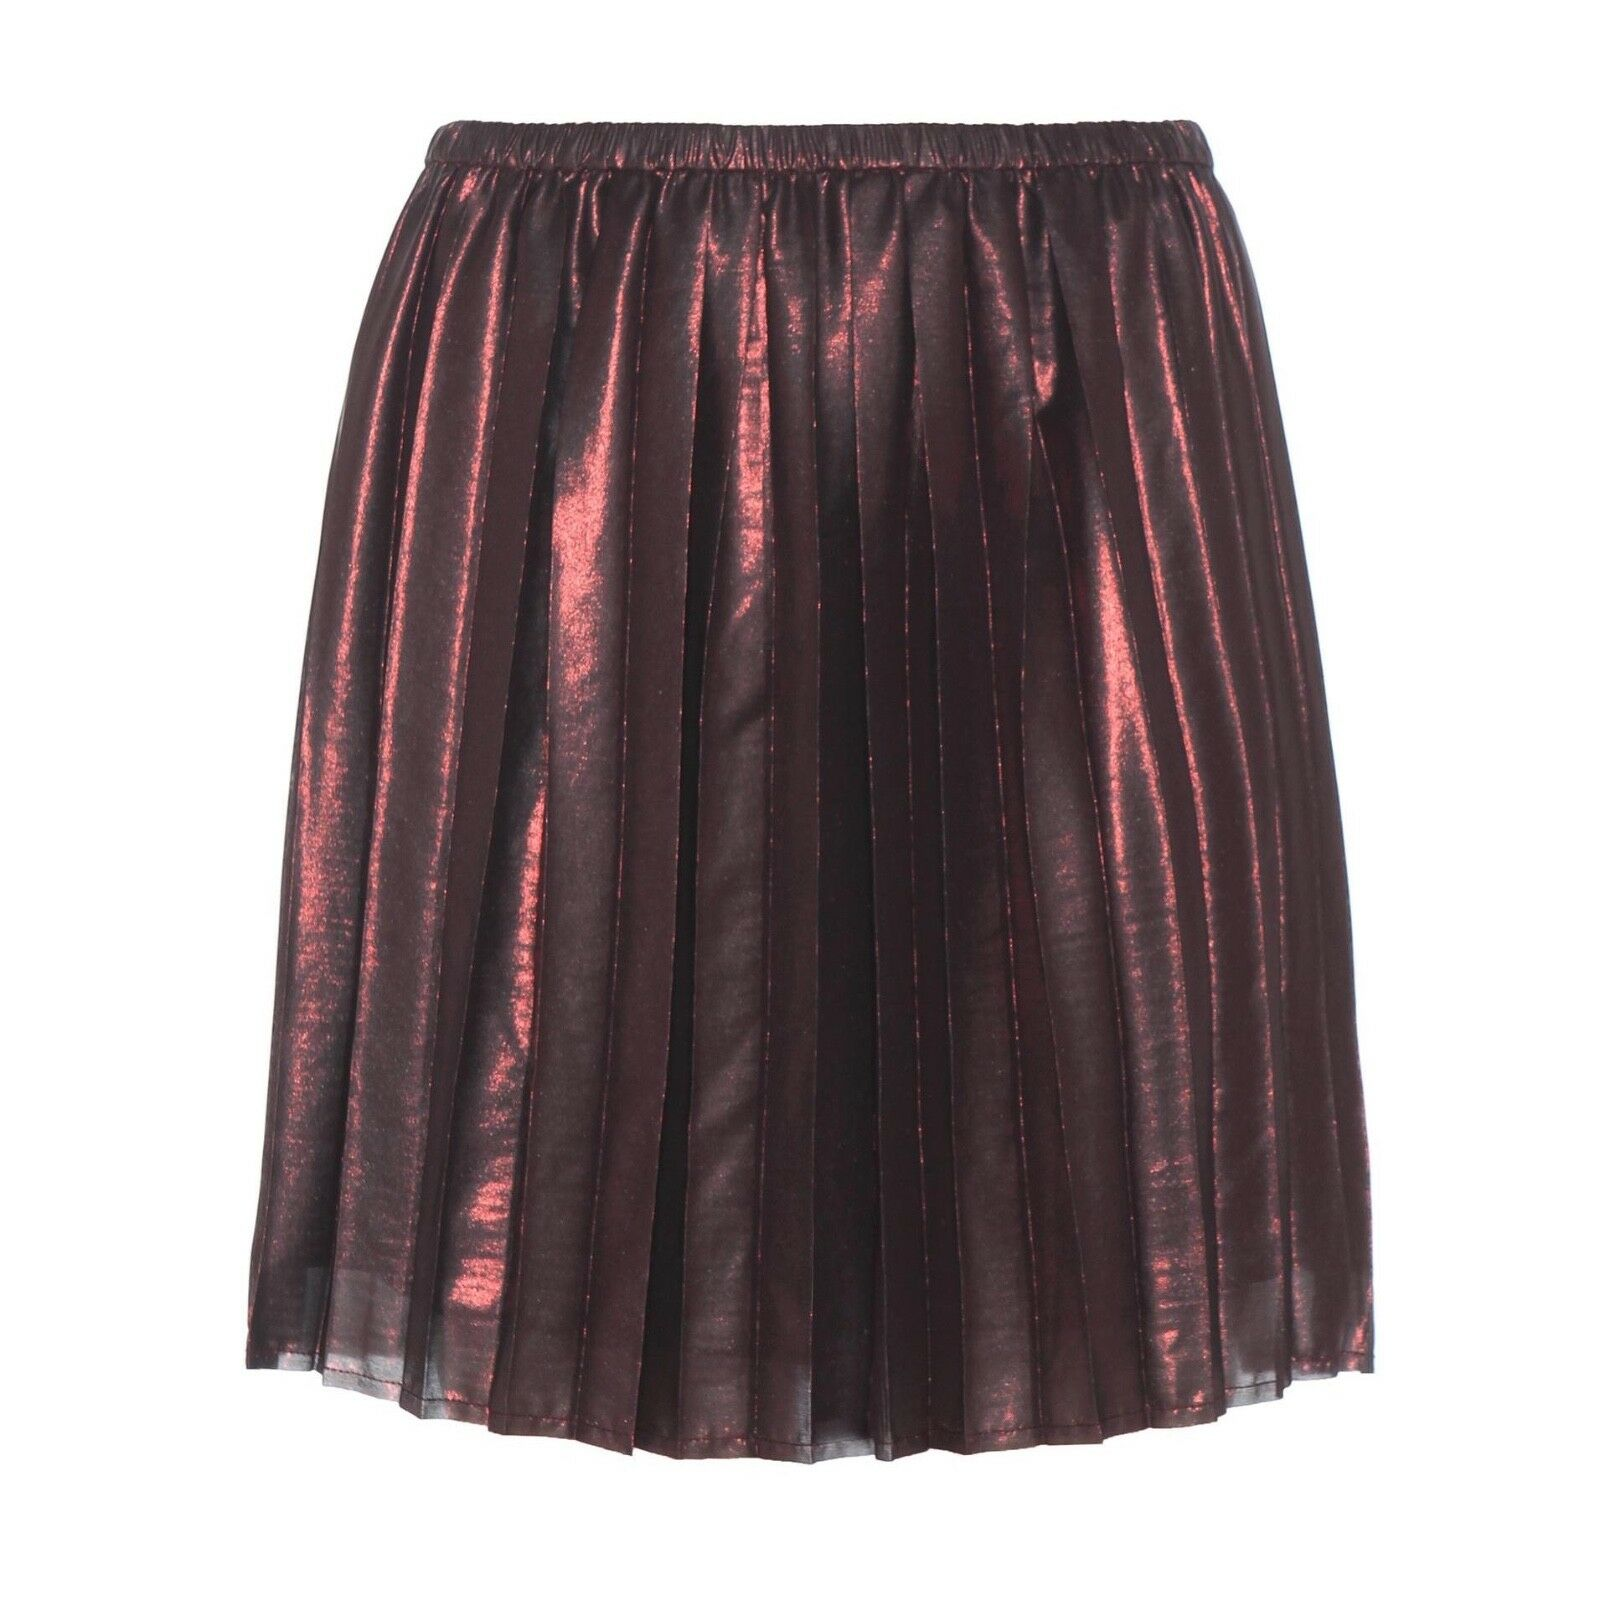 Isabel Marant Étoile Manda Pleated Metallic Skirt Size Small S